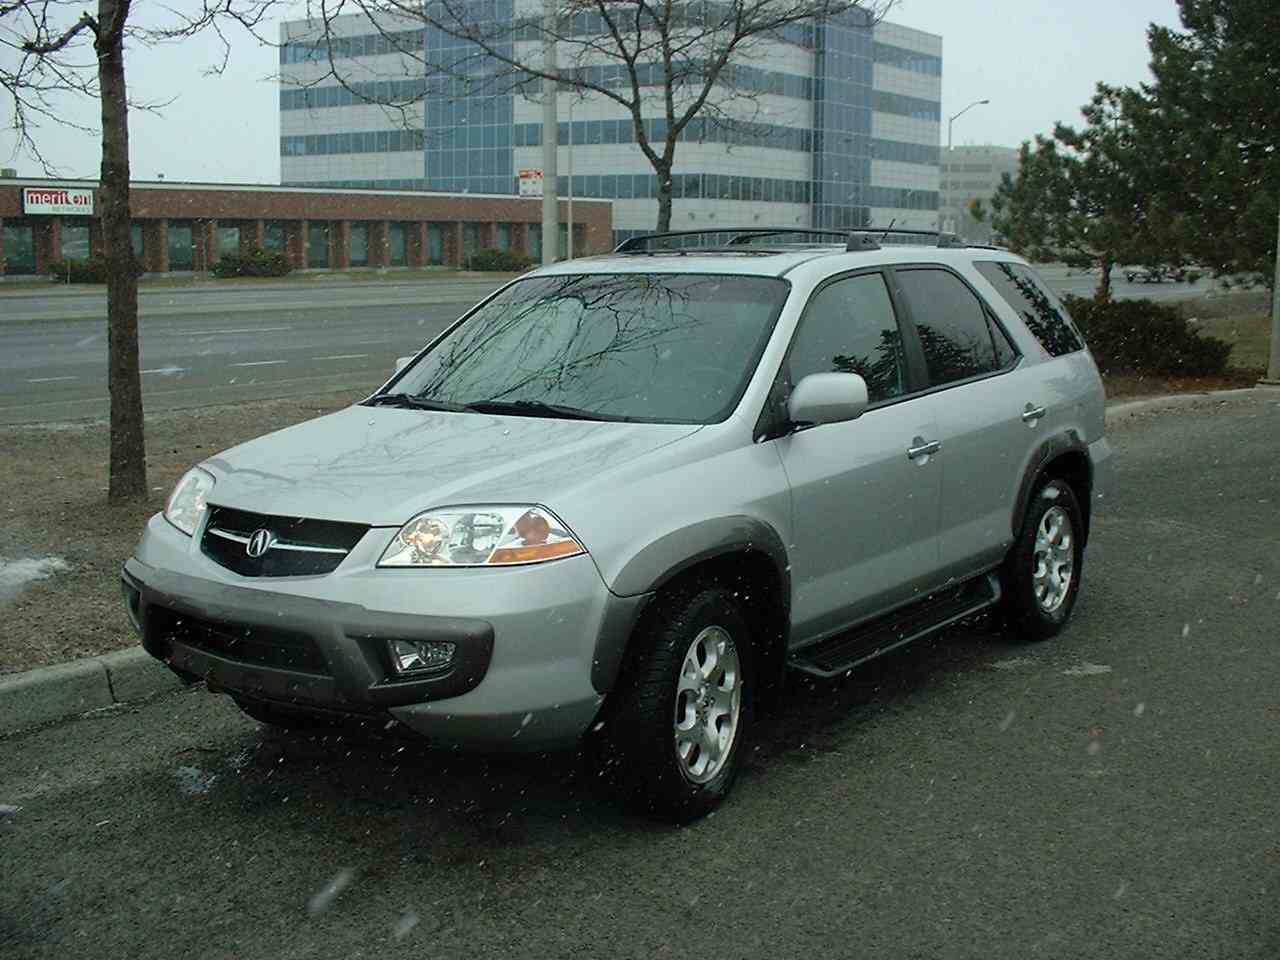 acura technology mdx for sale in nysportscars grigio metallic car parchment